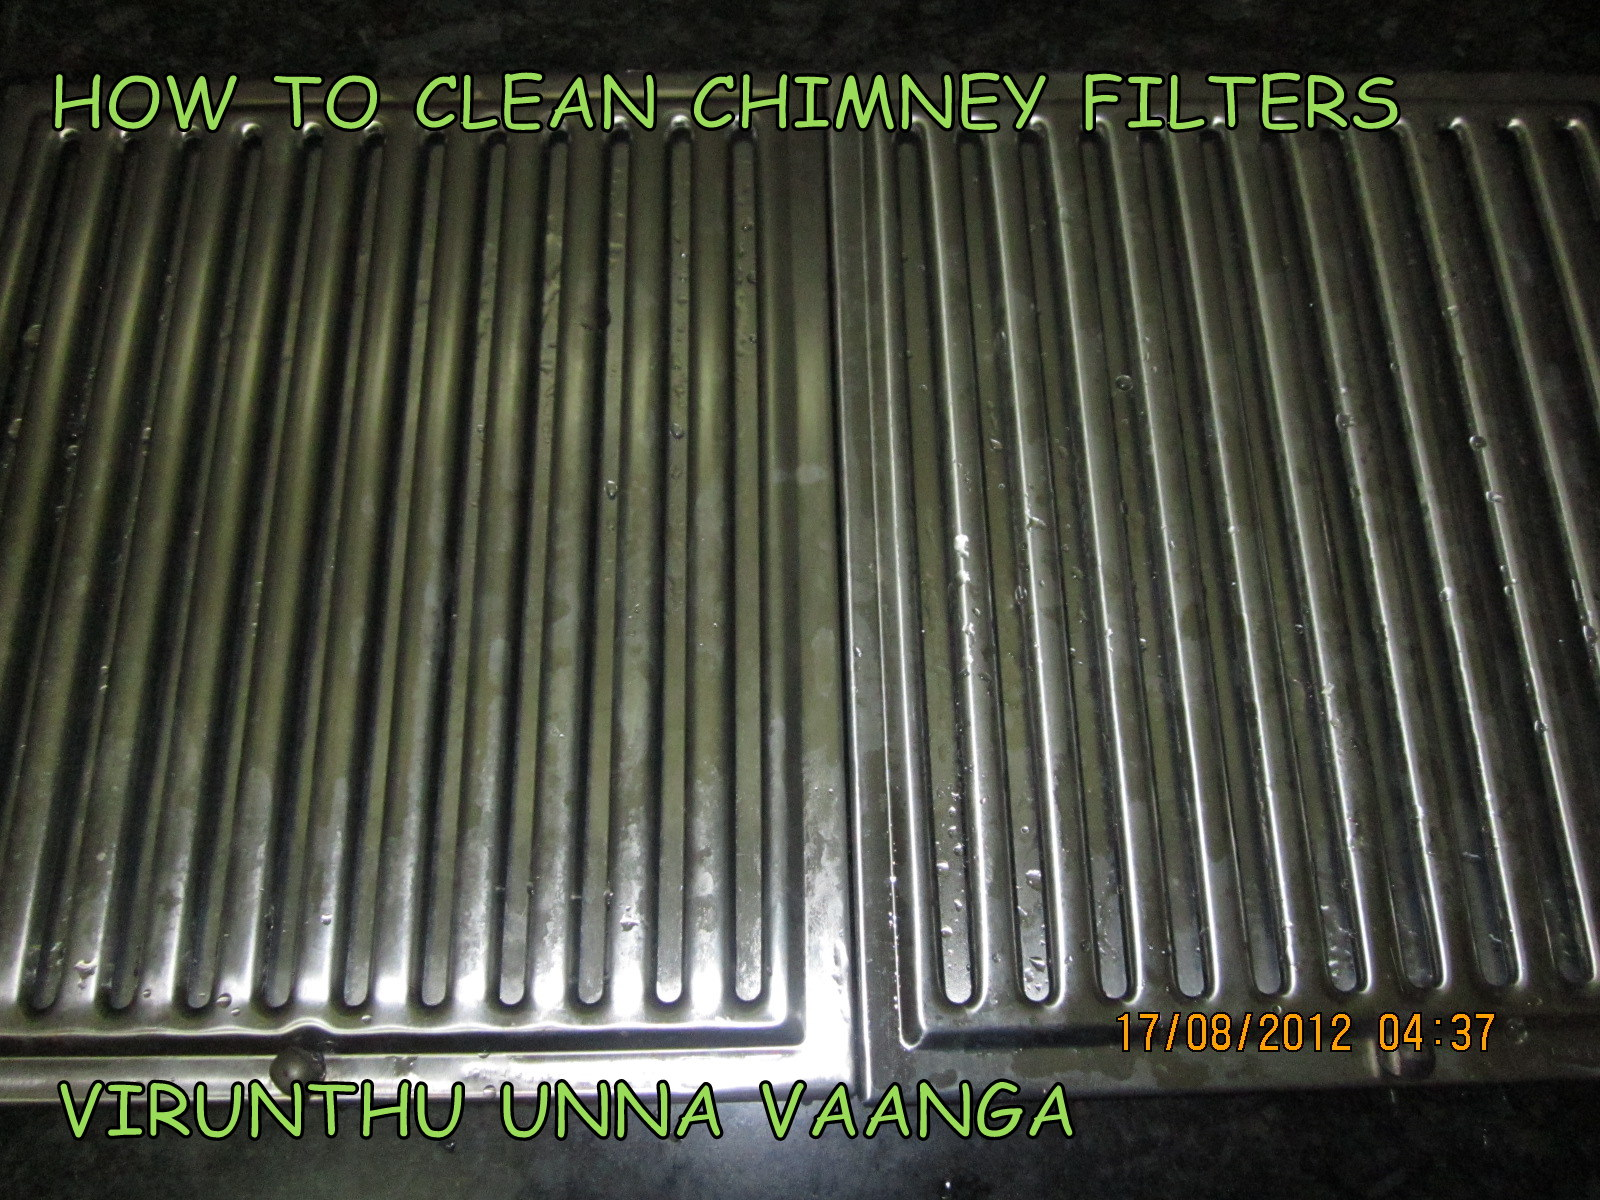 VIRUNTHU UNNA VAANGA: CLEAN BAFFLE FILTERS OF ELECTRIC CHIMNEY